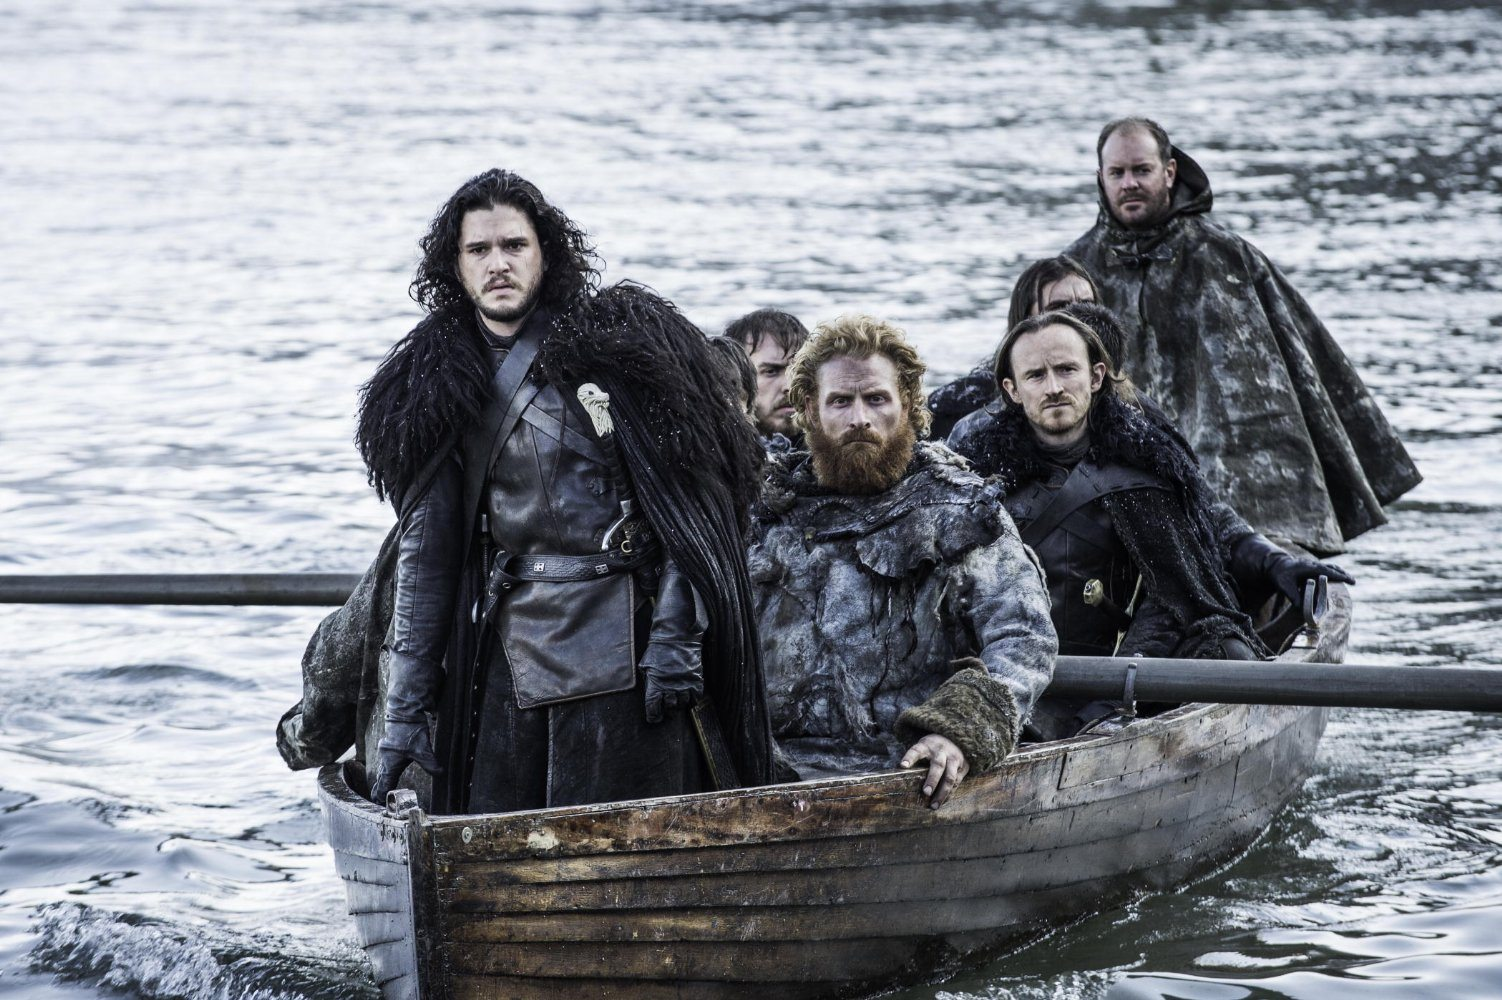 Jon Snow on a boat with several other men